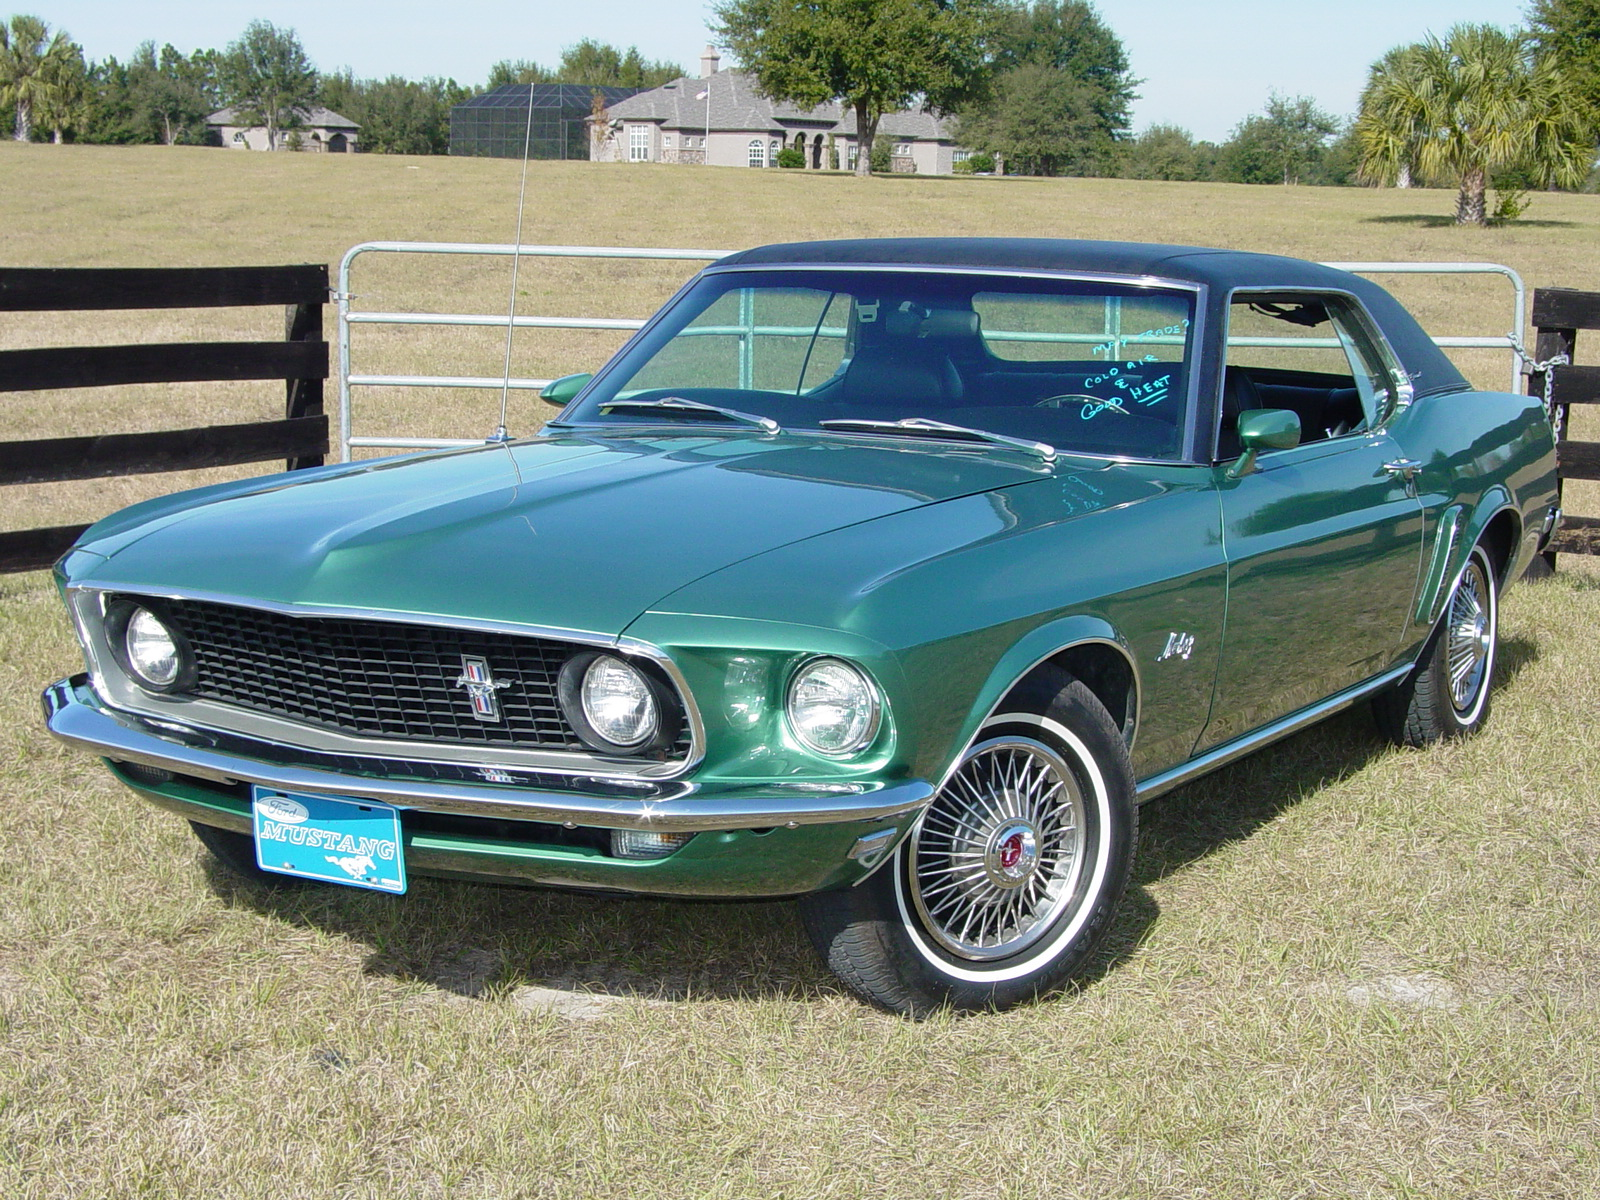 ford mustang 1969 ford mustang 1969 photo 12 car in pictures car photo gallery. Black Bedroom Furniture Sets. Home Design Ideas